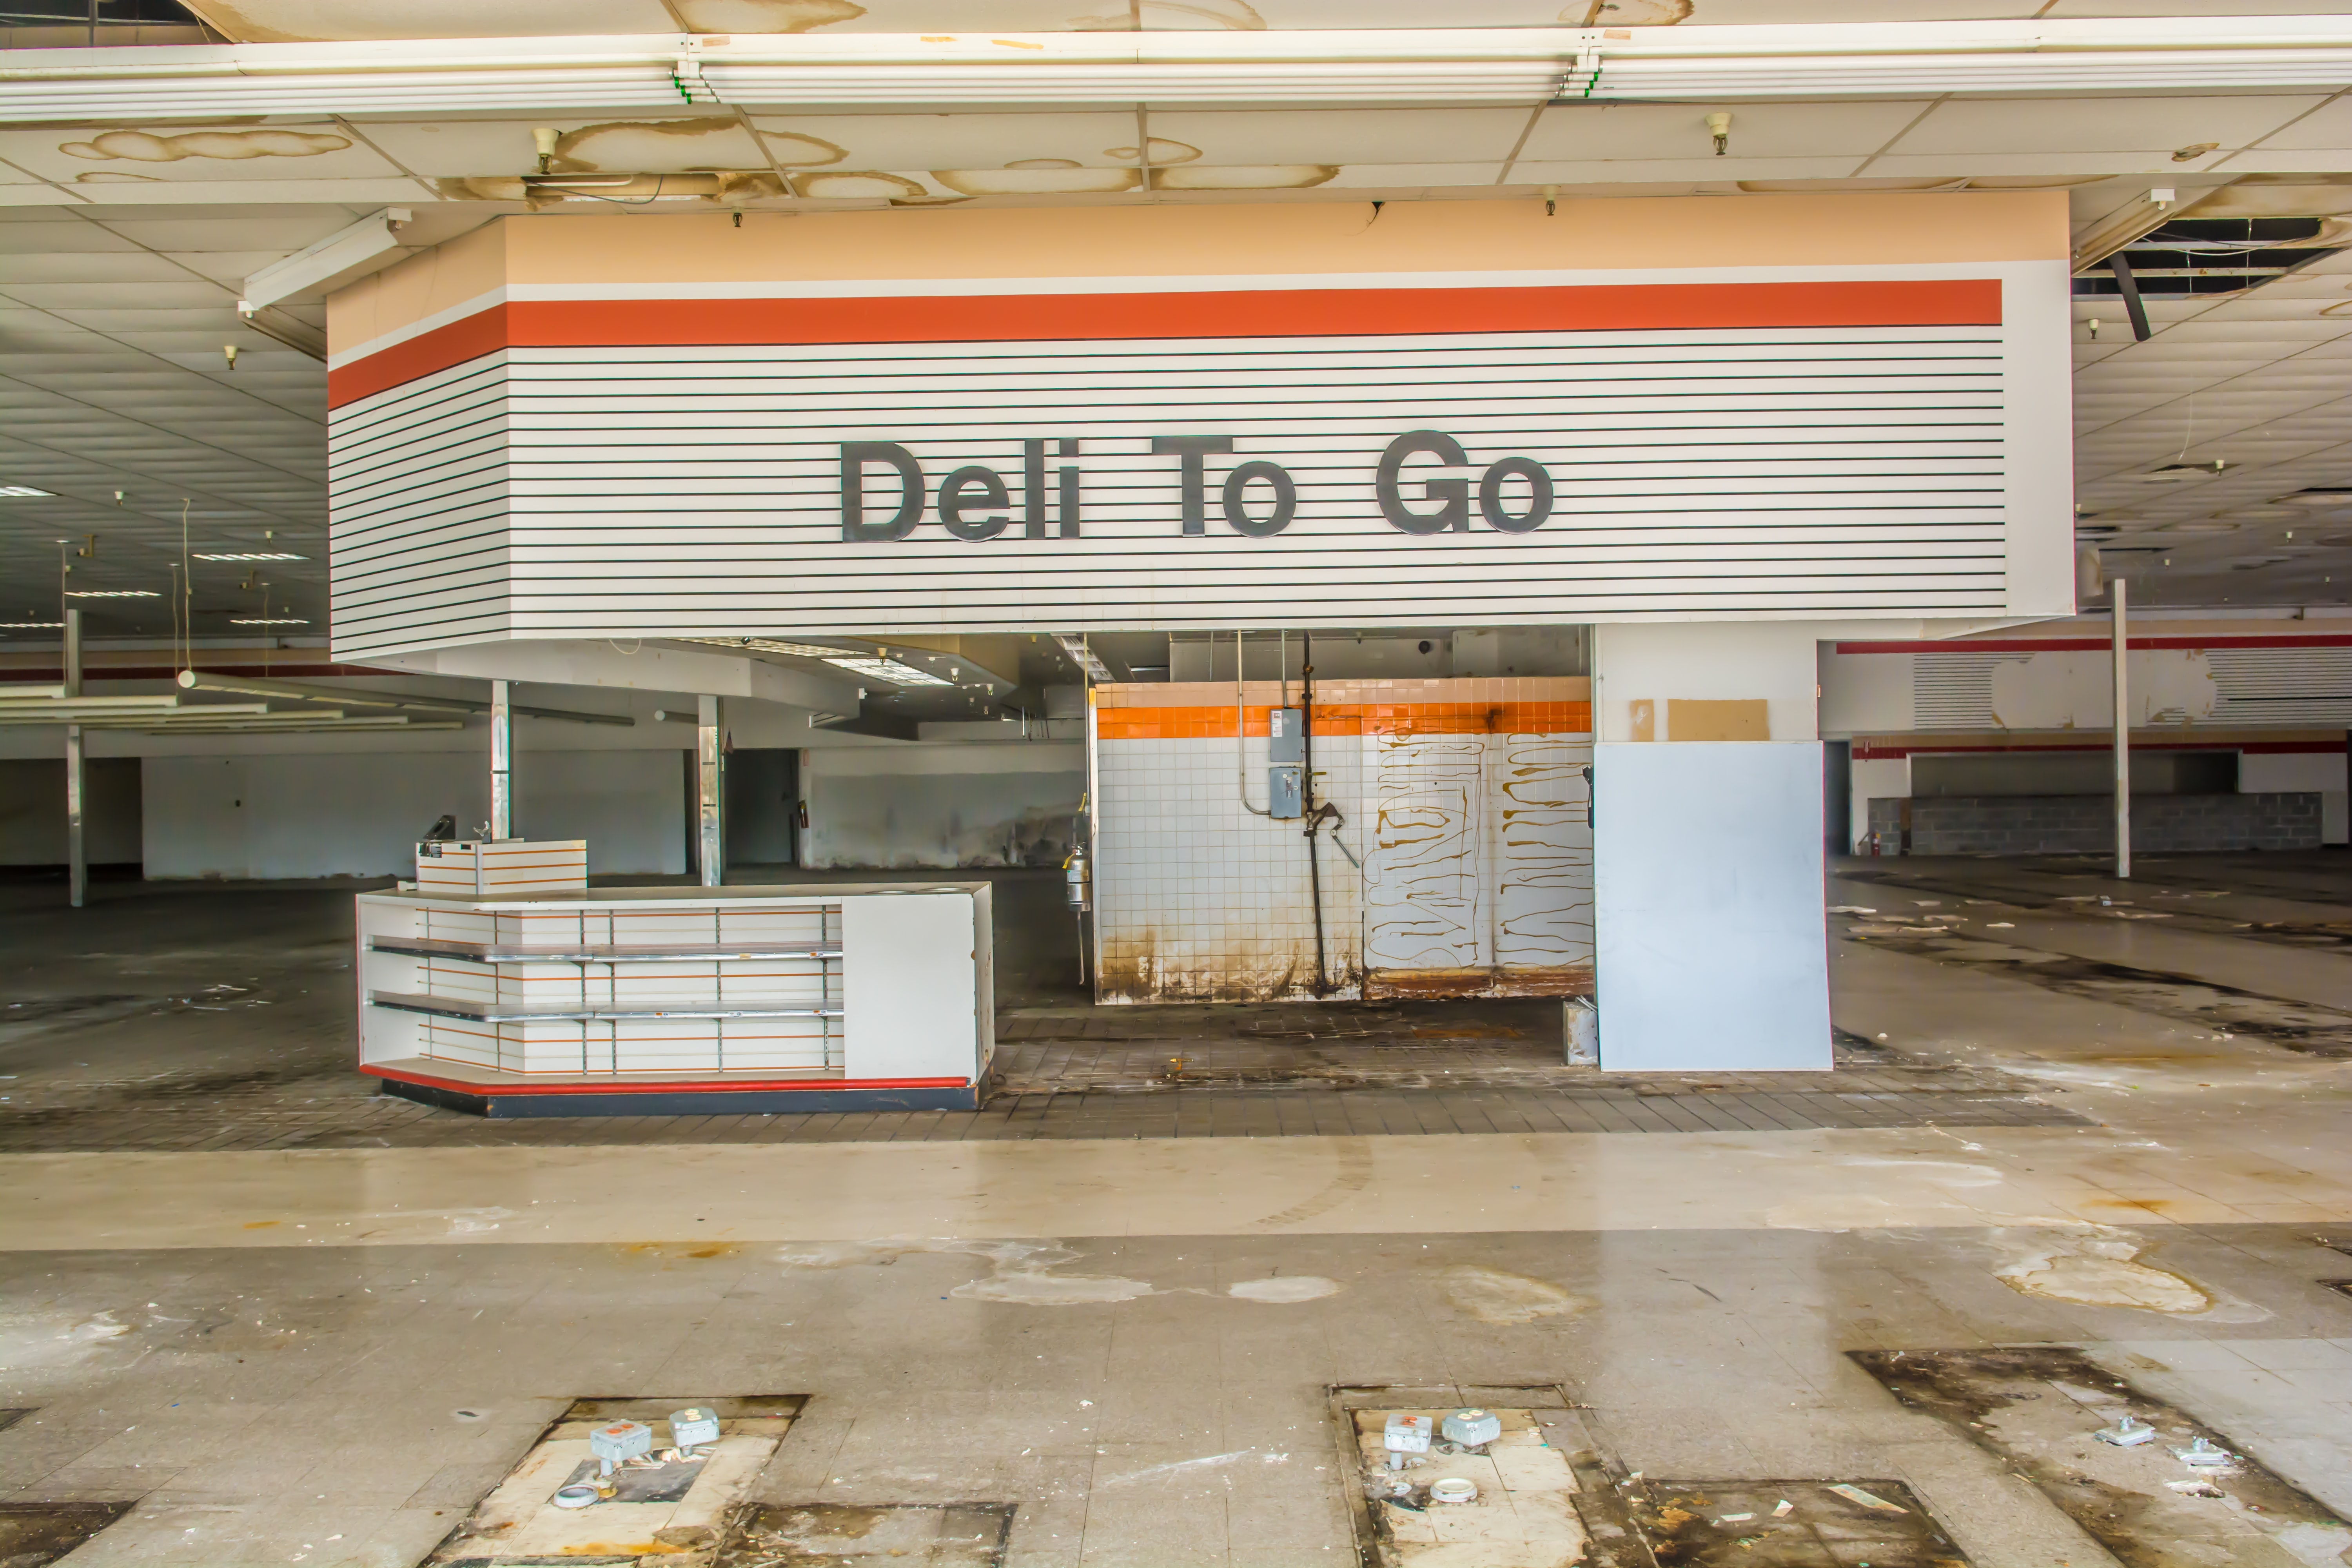 Deli To Go building